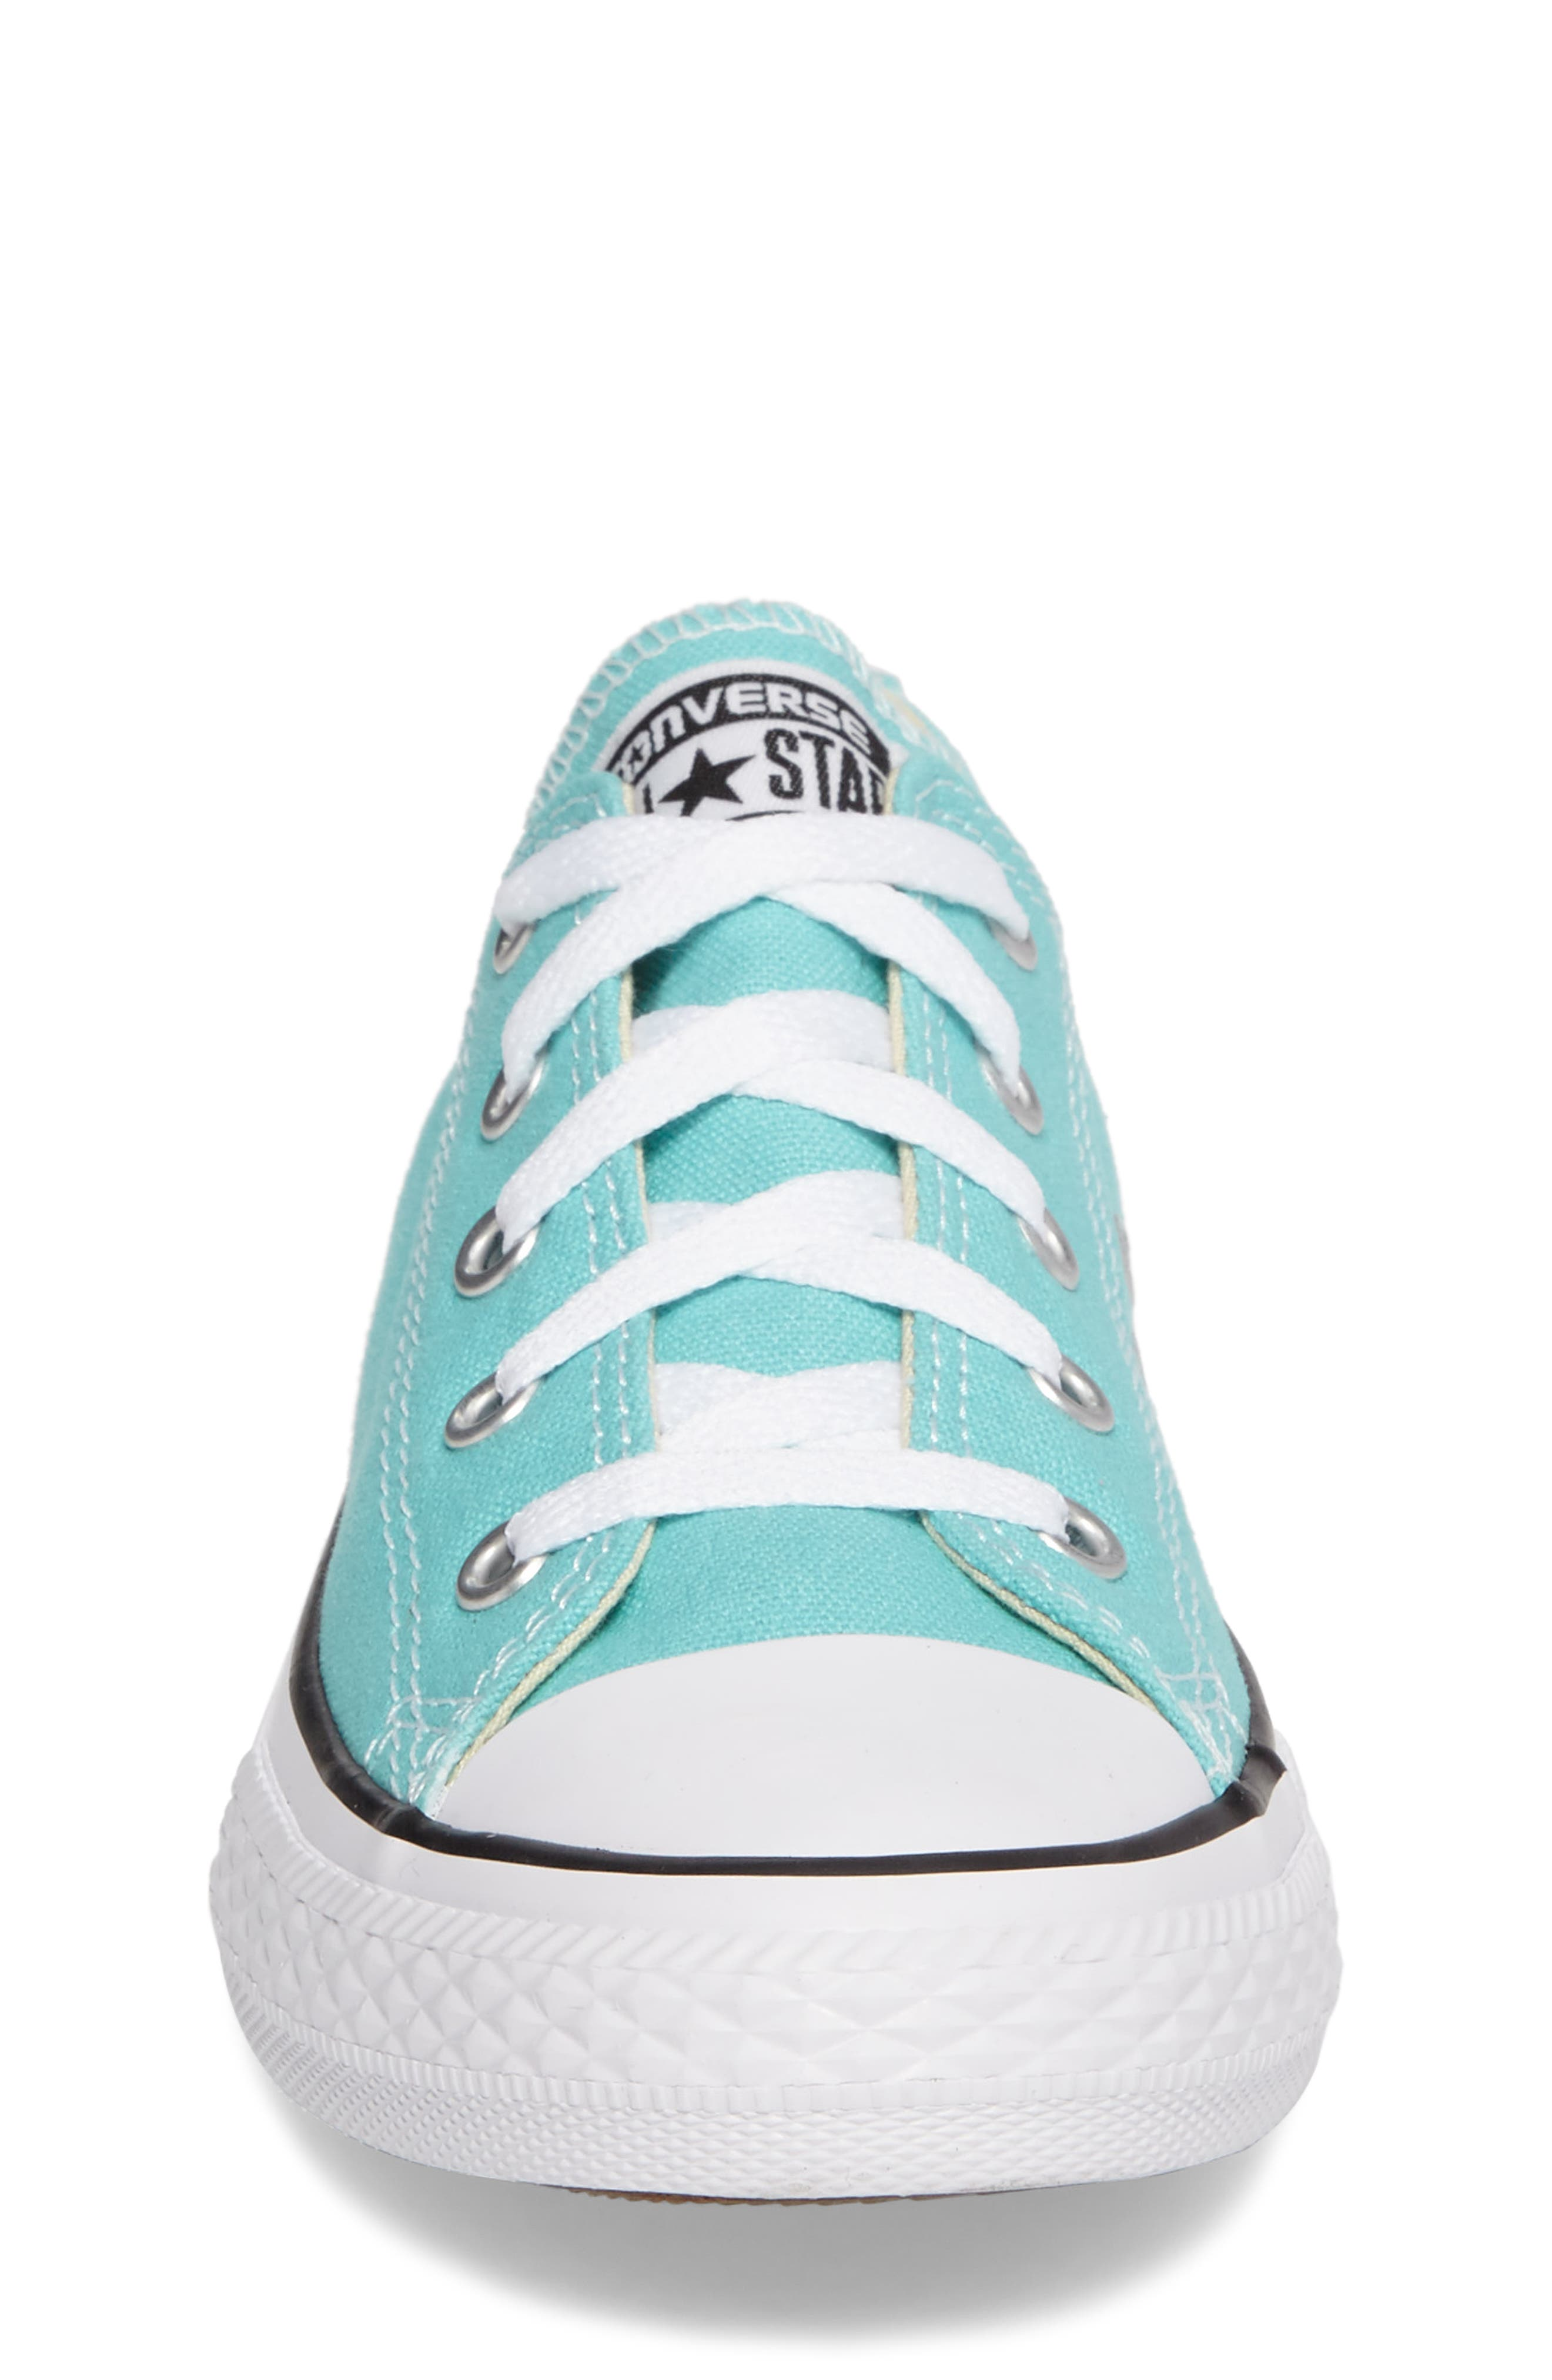 Chuck Taylor<sup>®</sup> All Star<sup>®</sup> Low Top Sneaker,                             Alternate thumbnail 4, color,                             406